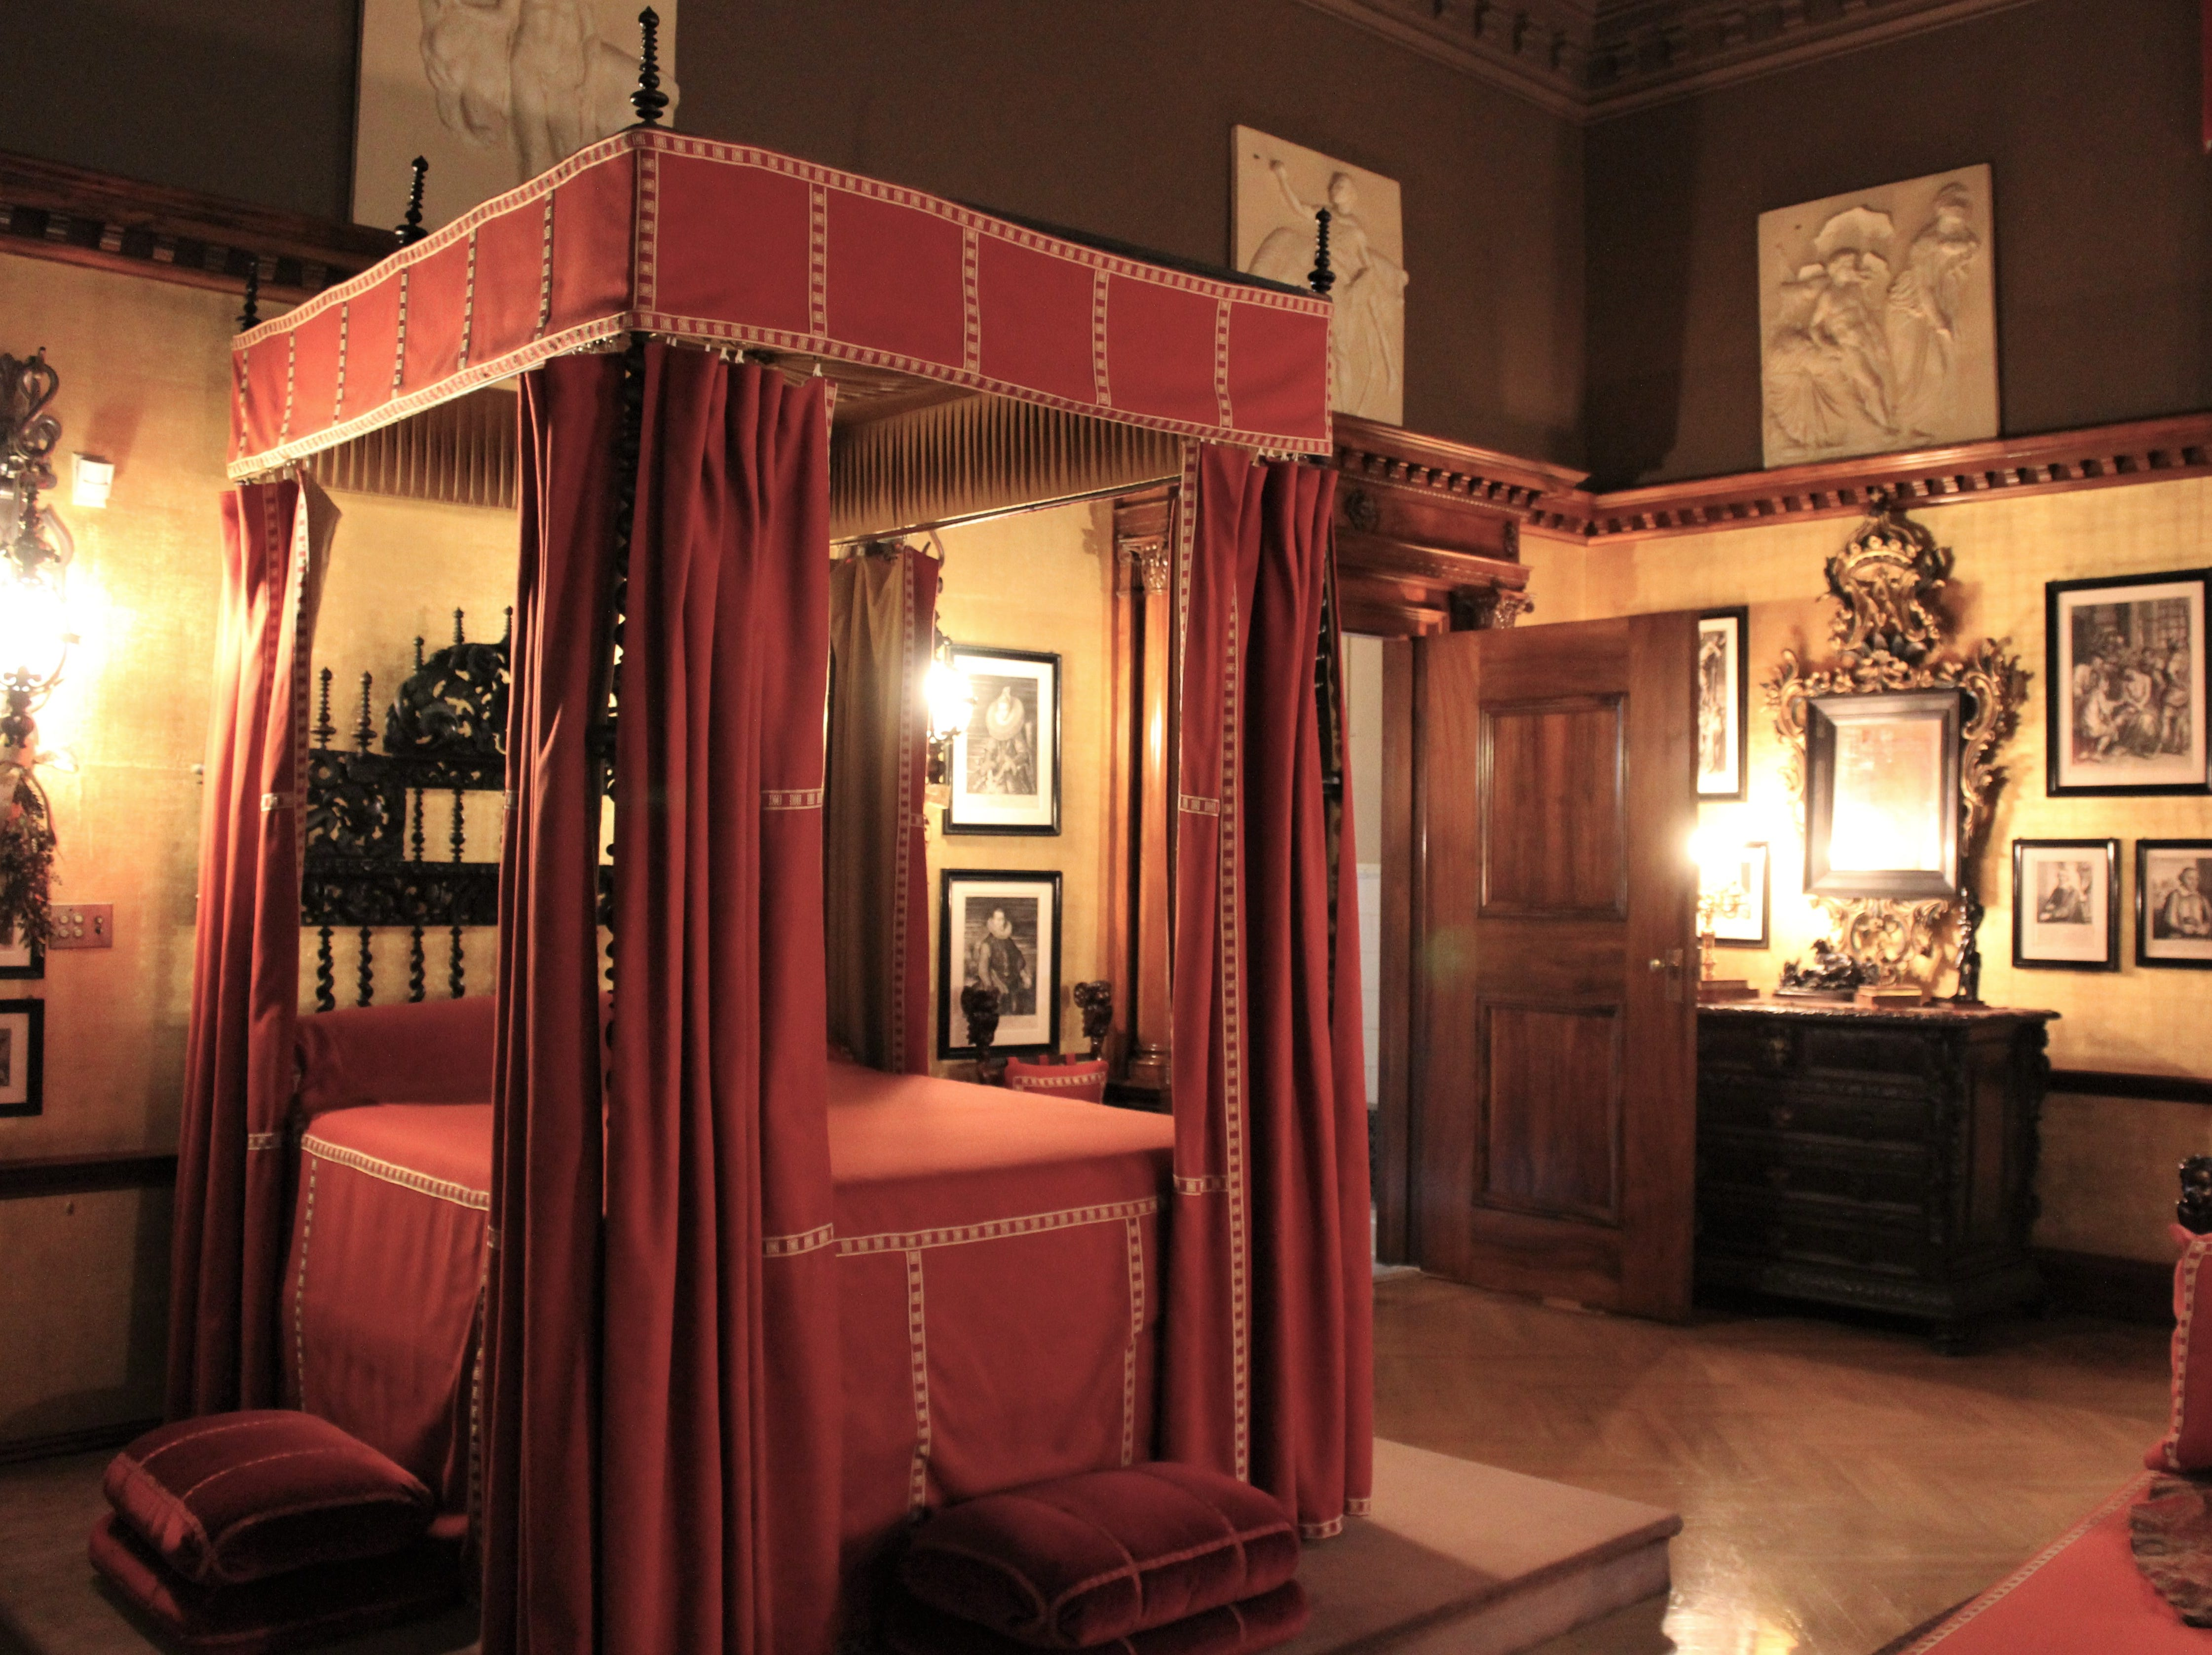 One of many elegant bedrooms at Biltmore House, near Asheville, N.C. You can look but don't think about taking a nap.